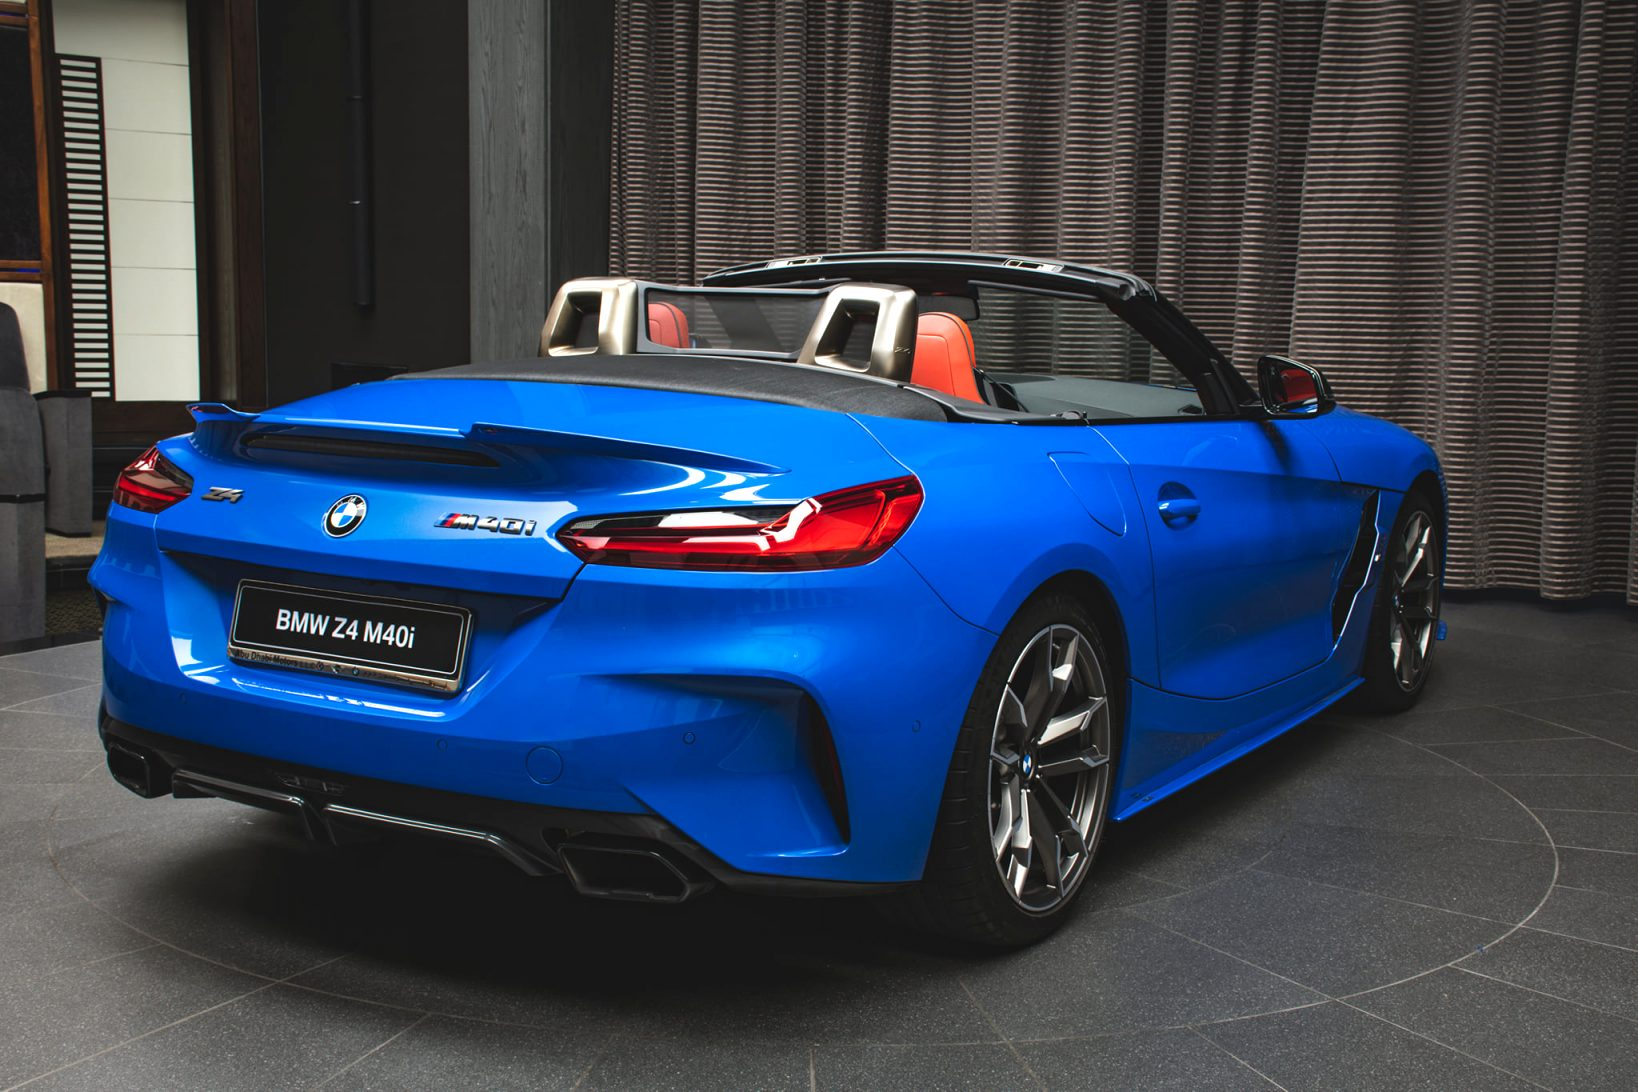 2021 BMW z4 m40i Price and Release date